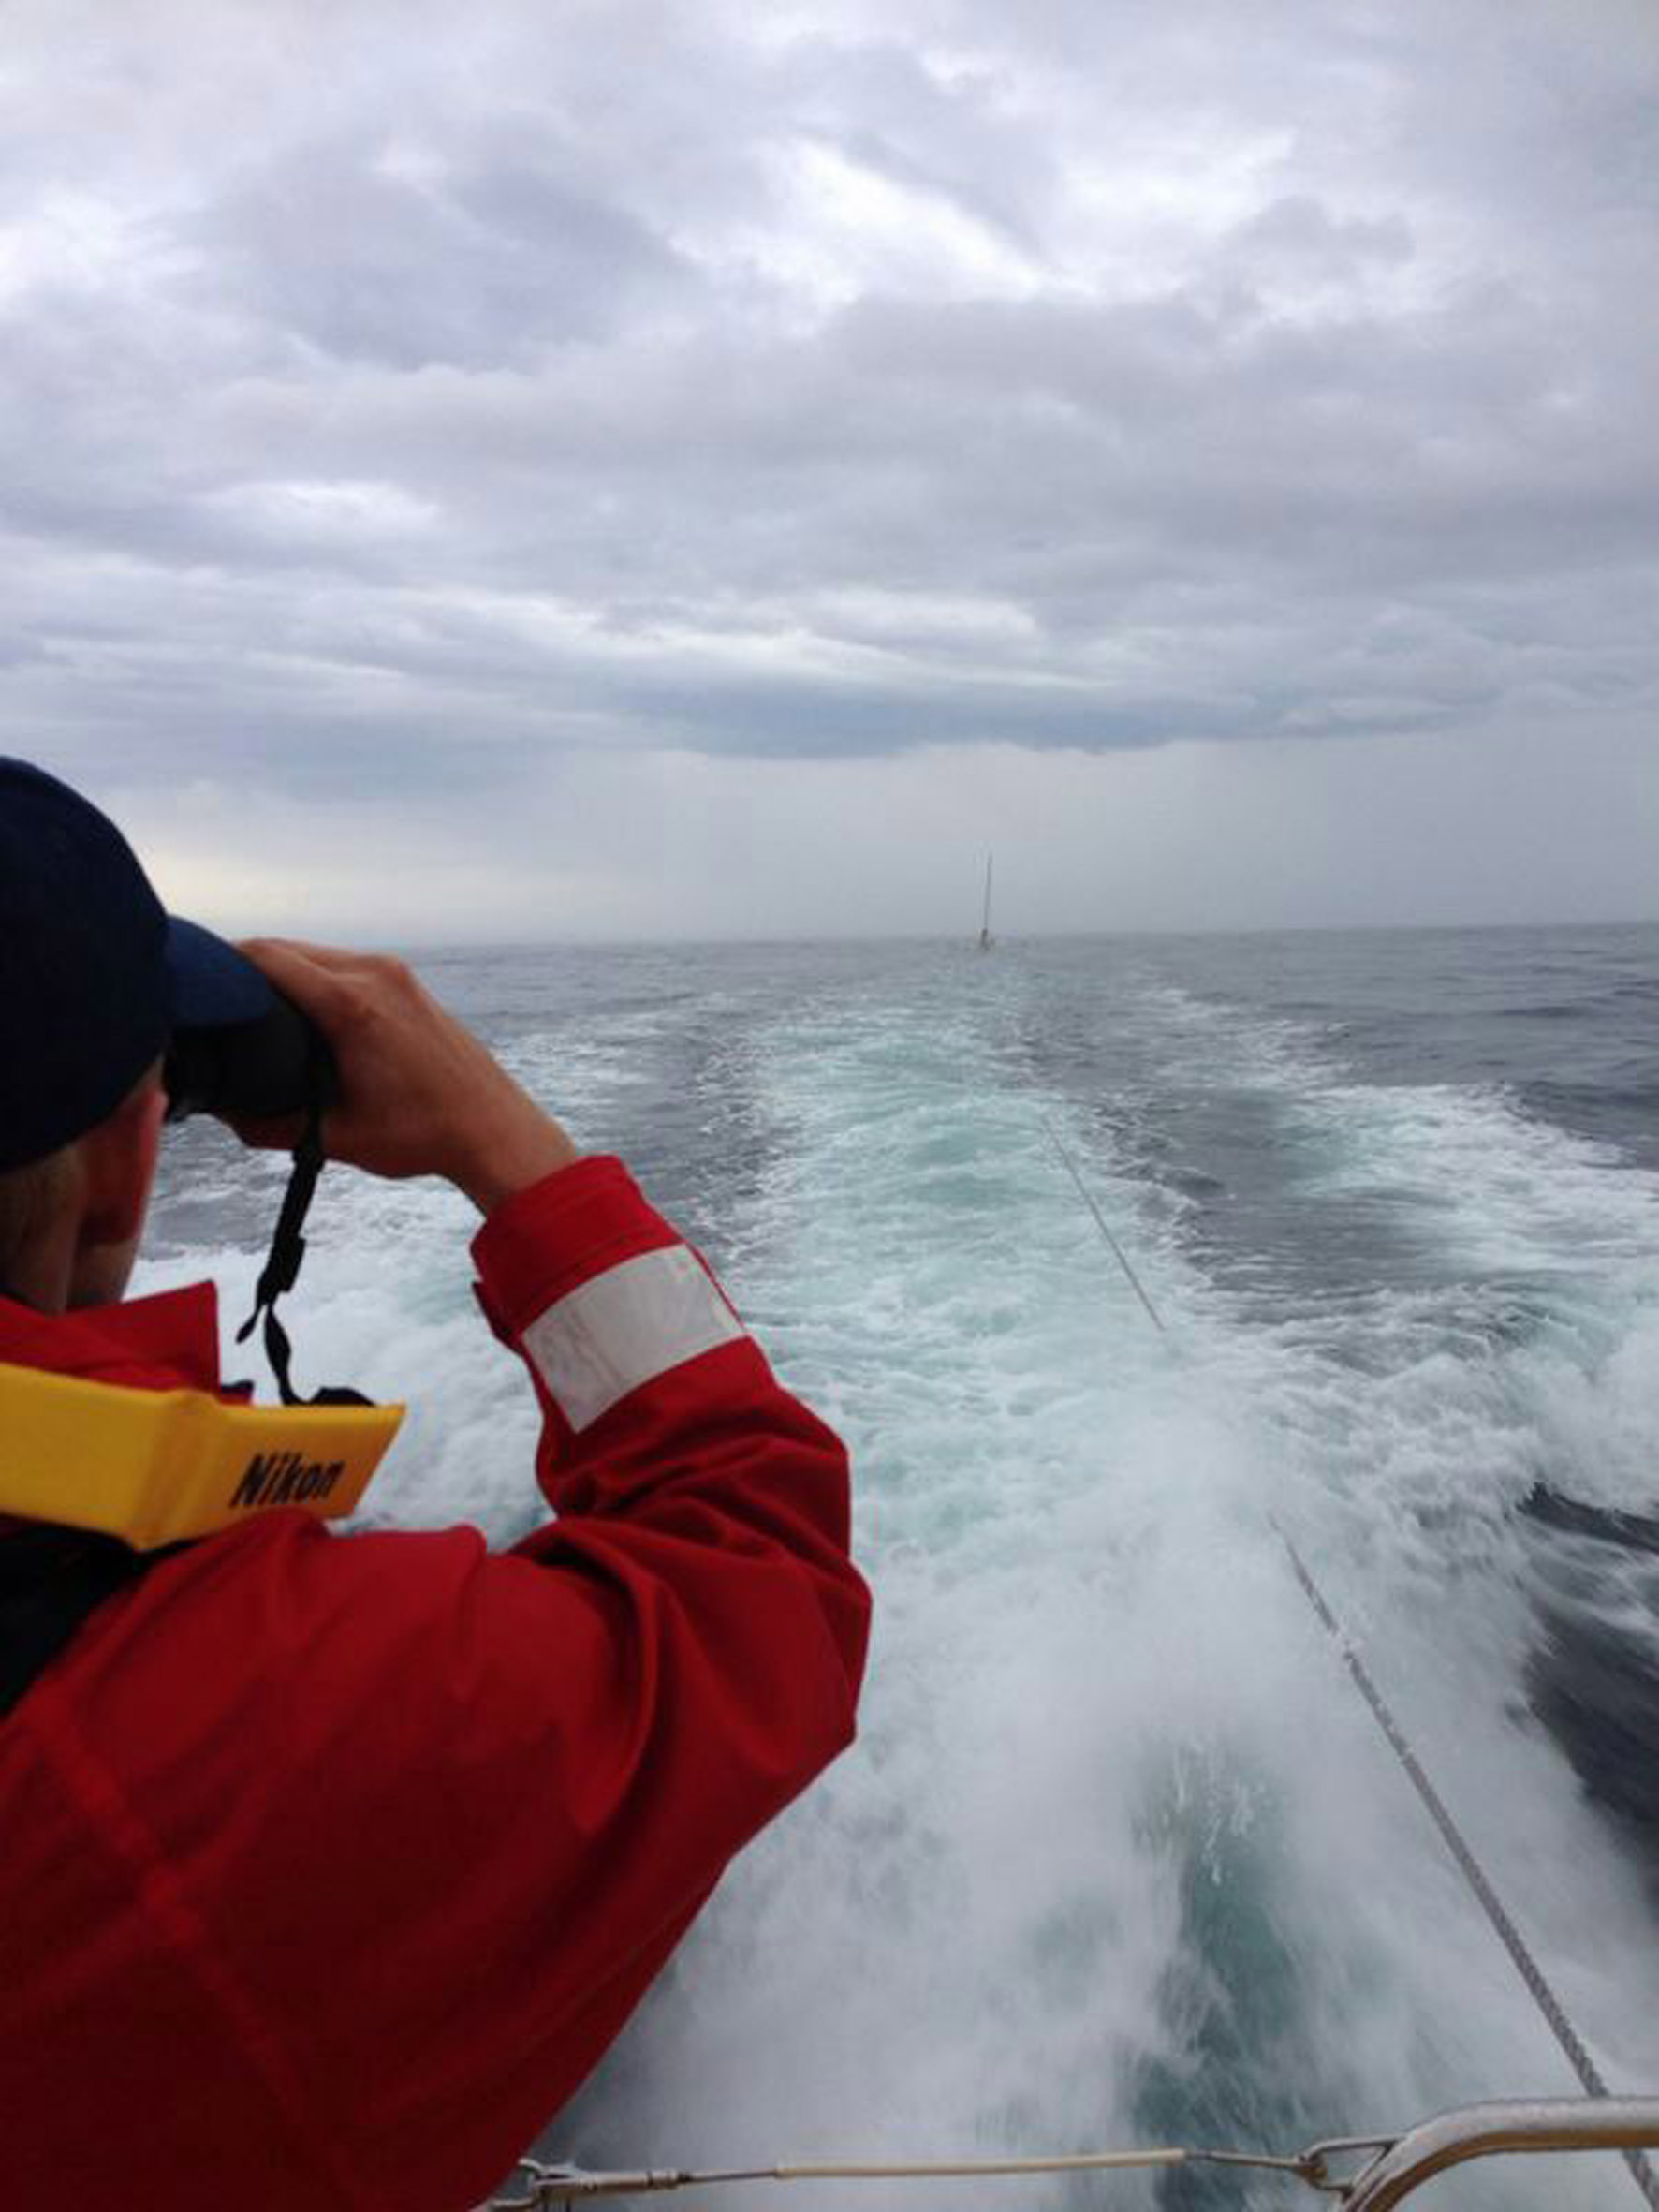 The Spirit of Vodacom tows the Cape to Rio yacht Black Cat back to Cape Town. Picture Brad Seaton-Smith / NSRI.